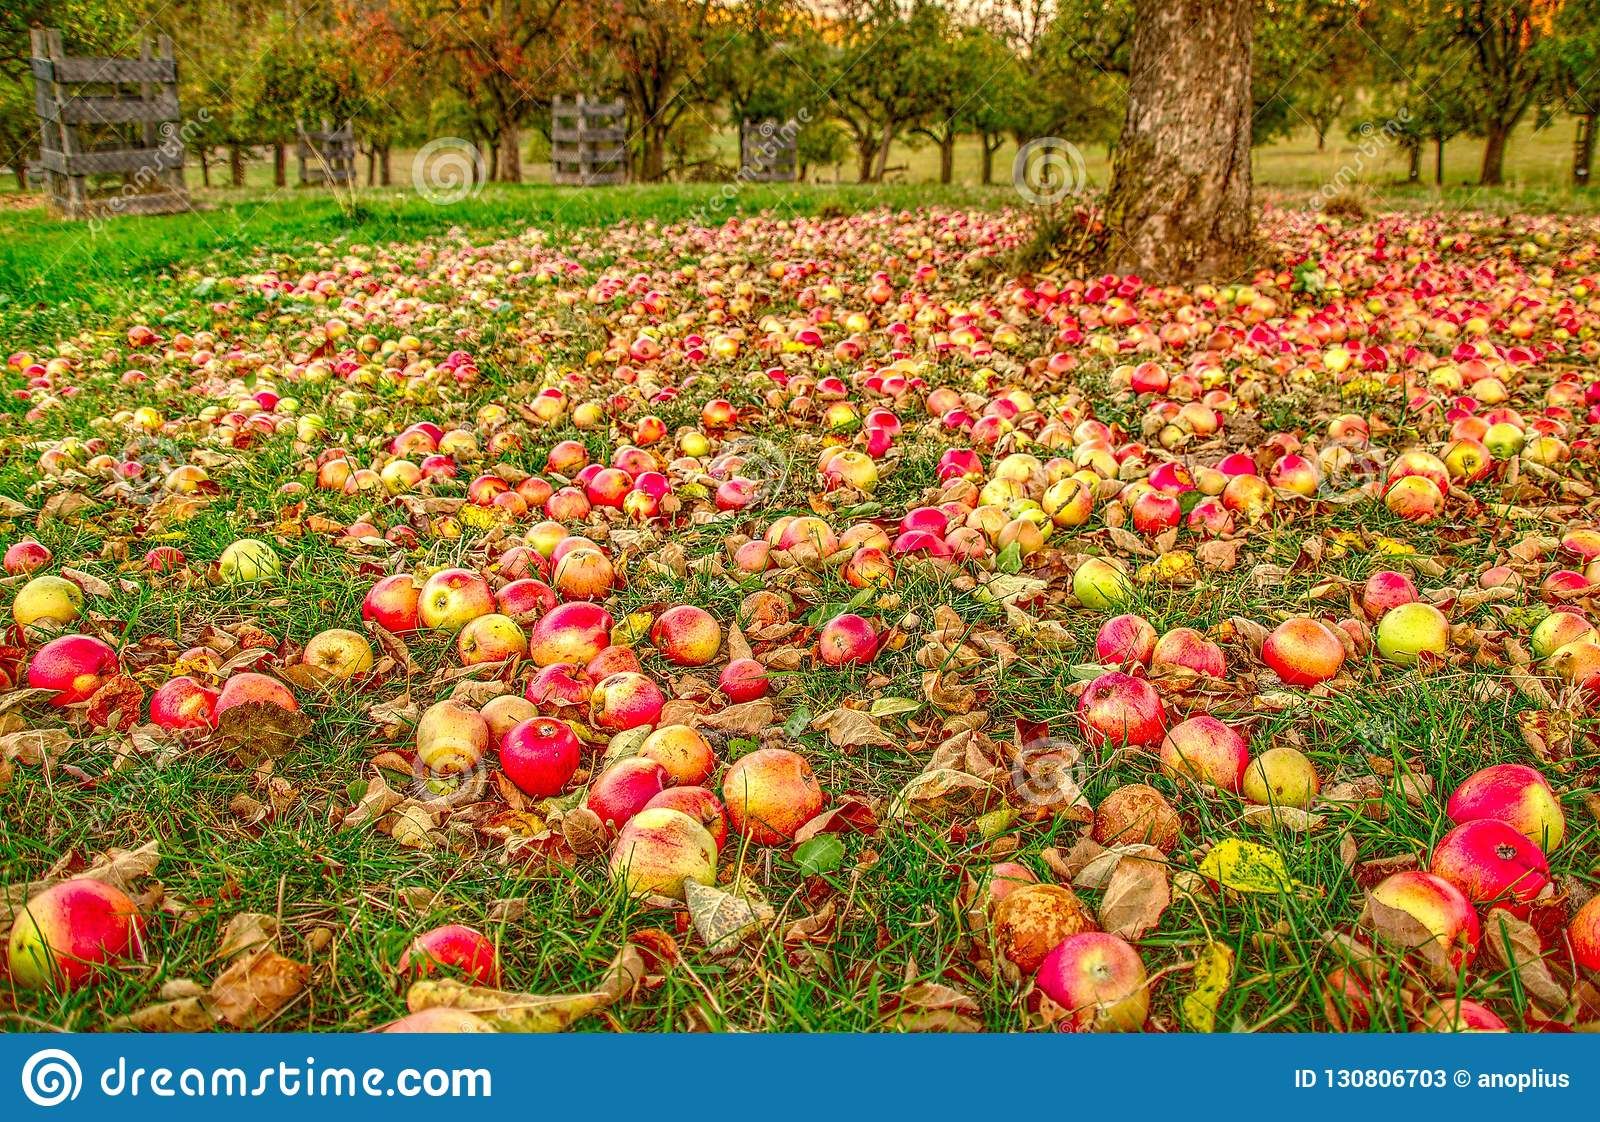 Autumn in the apple garden